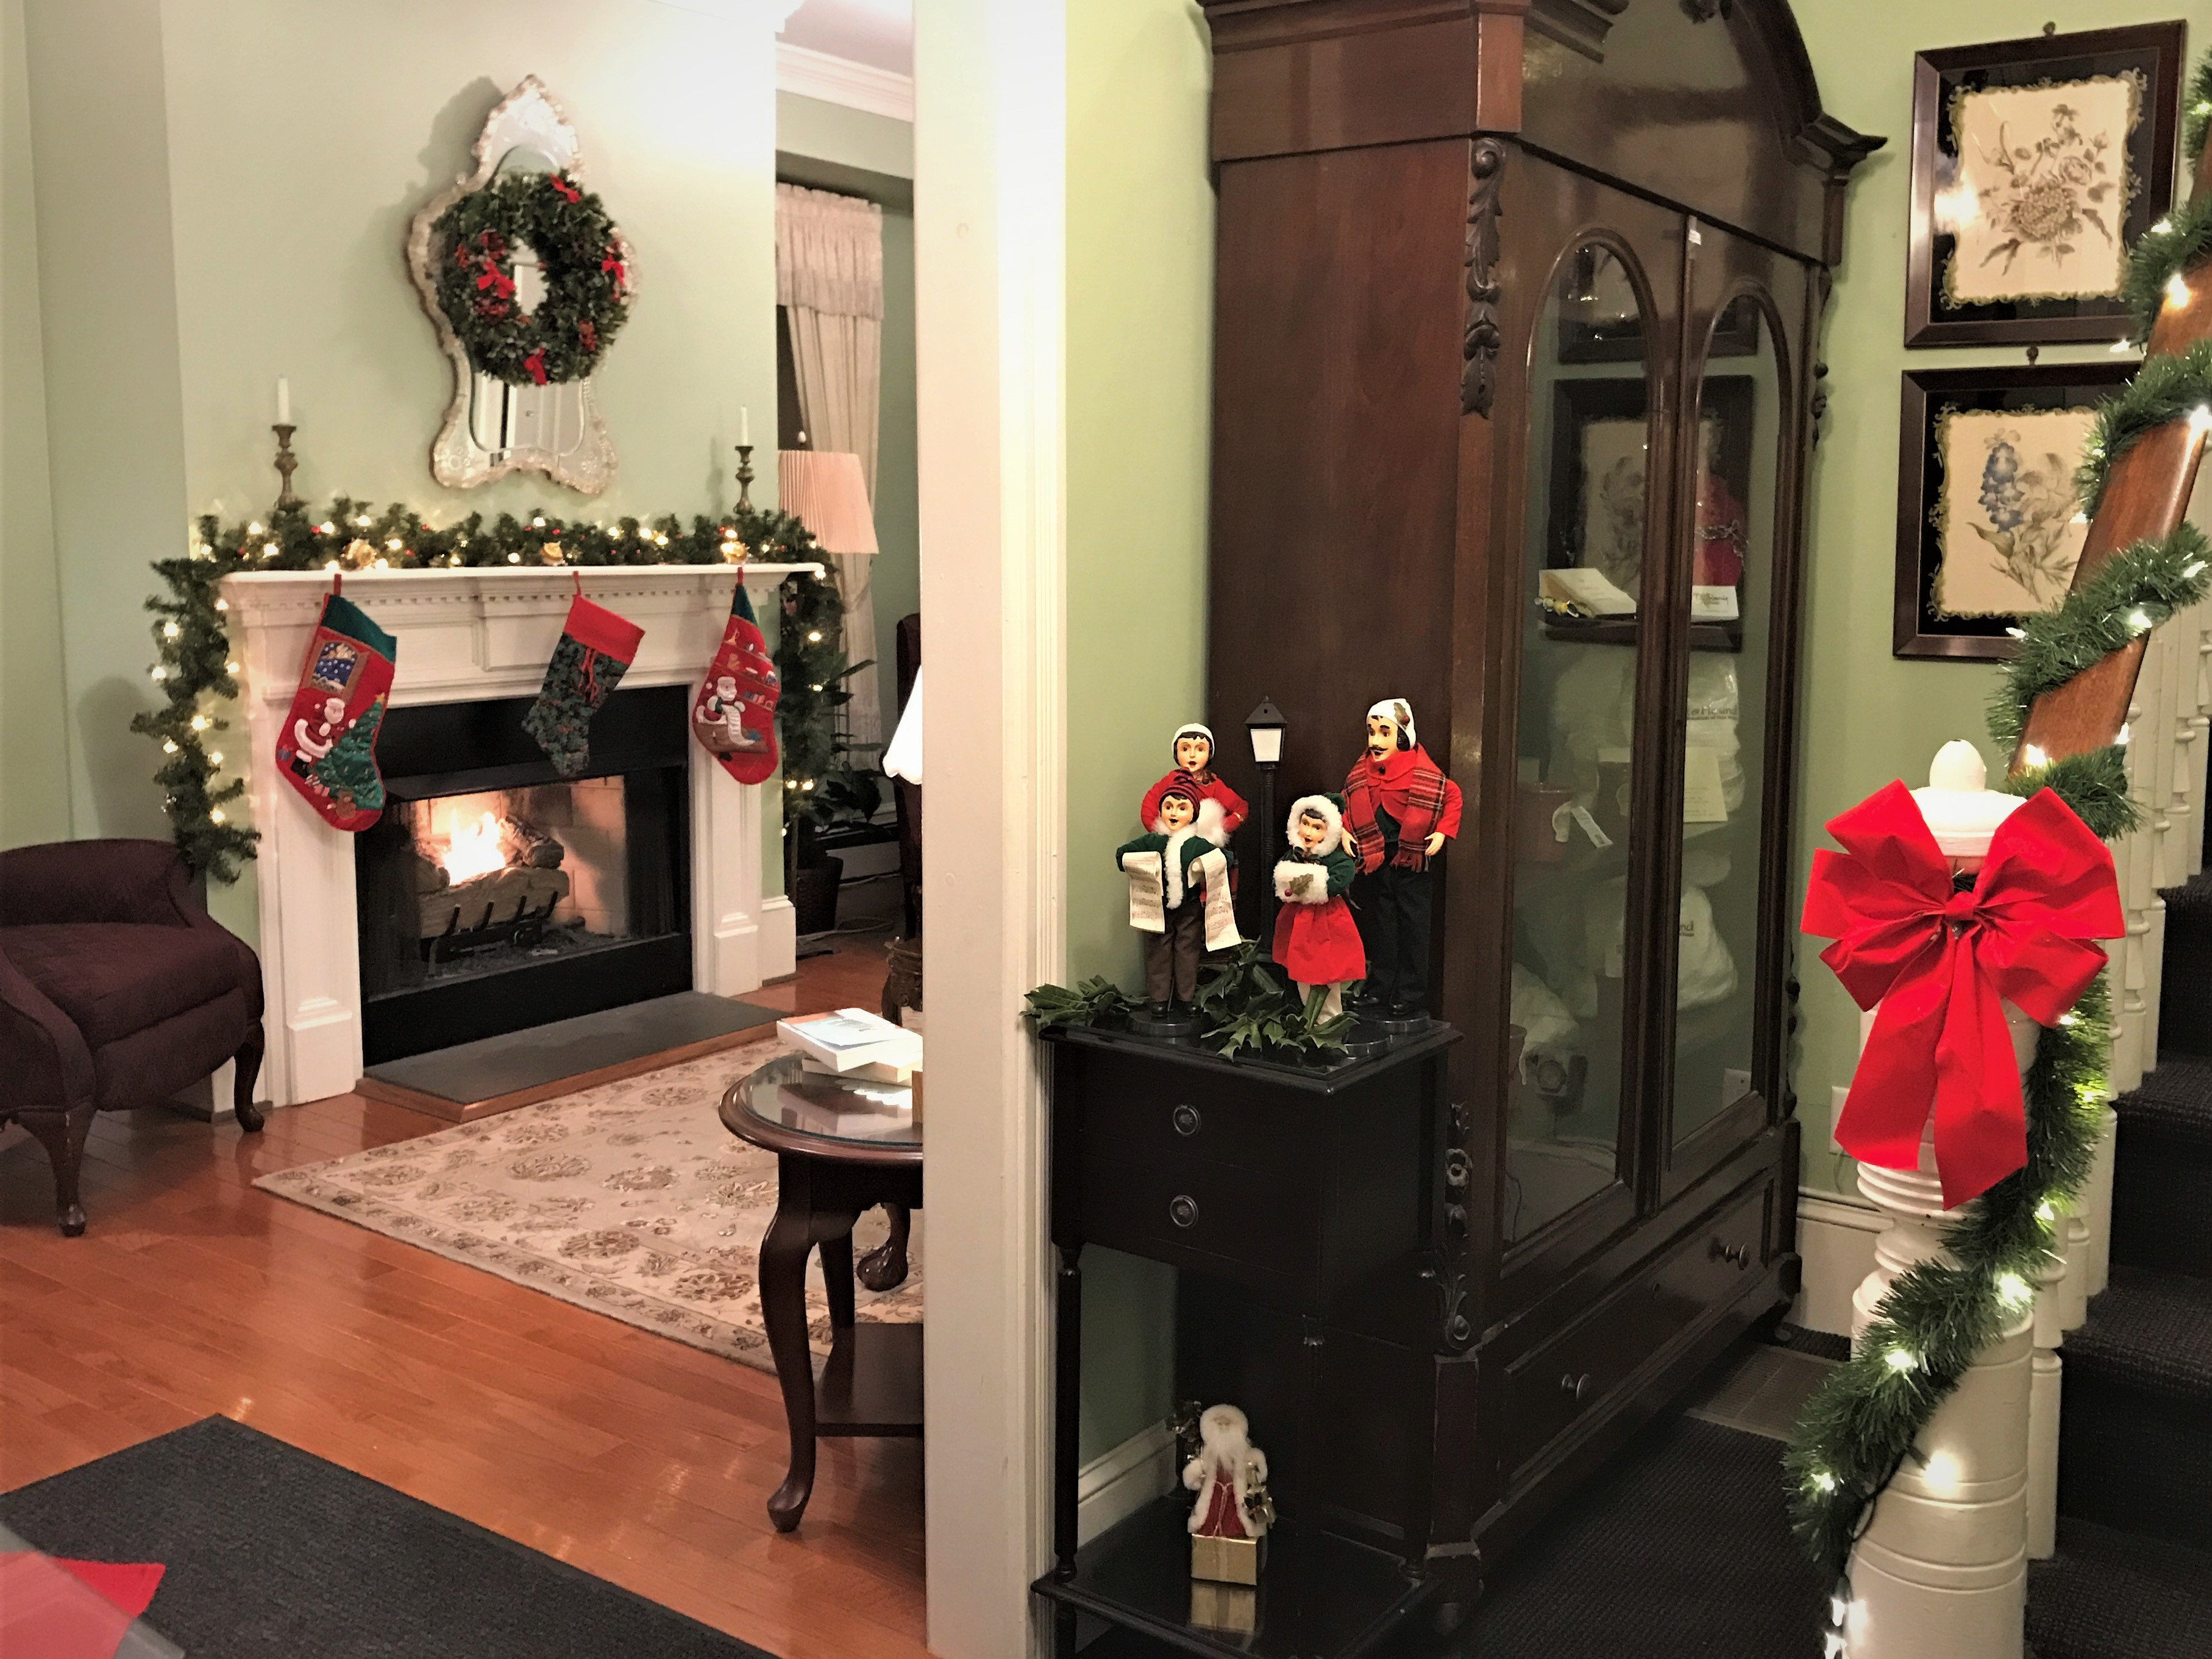 fireplace lit with red stockings hung, viewed from the front door and lights on bannister